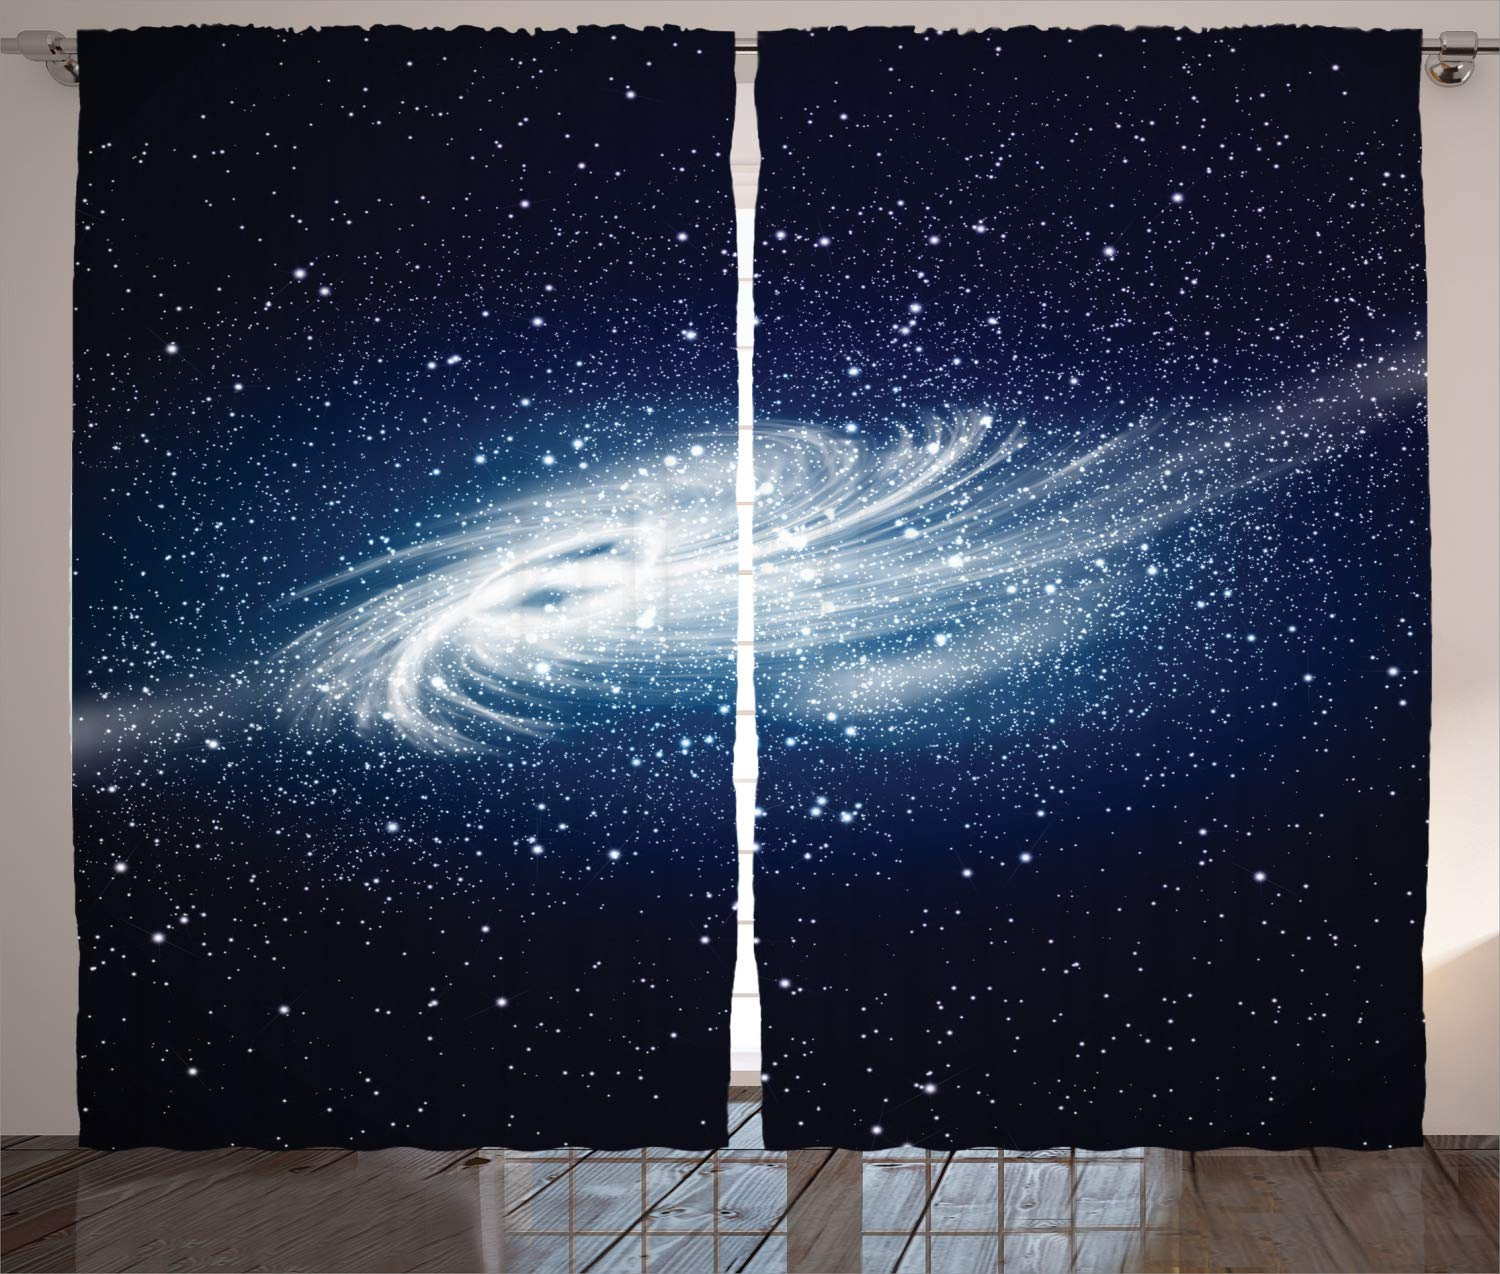 Ambesonne Space Decorations Curtains 2 Panel Set by, Spiral Galaxy Image Space and Stars Celestial Cosmos Expanse Universe Modern Print, Living Room Bedroom Decor, 108 W X 84 L Inches Navy White